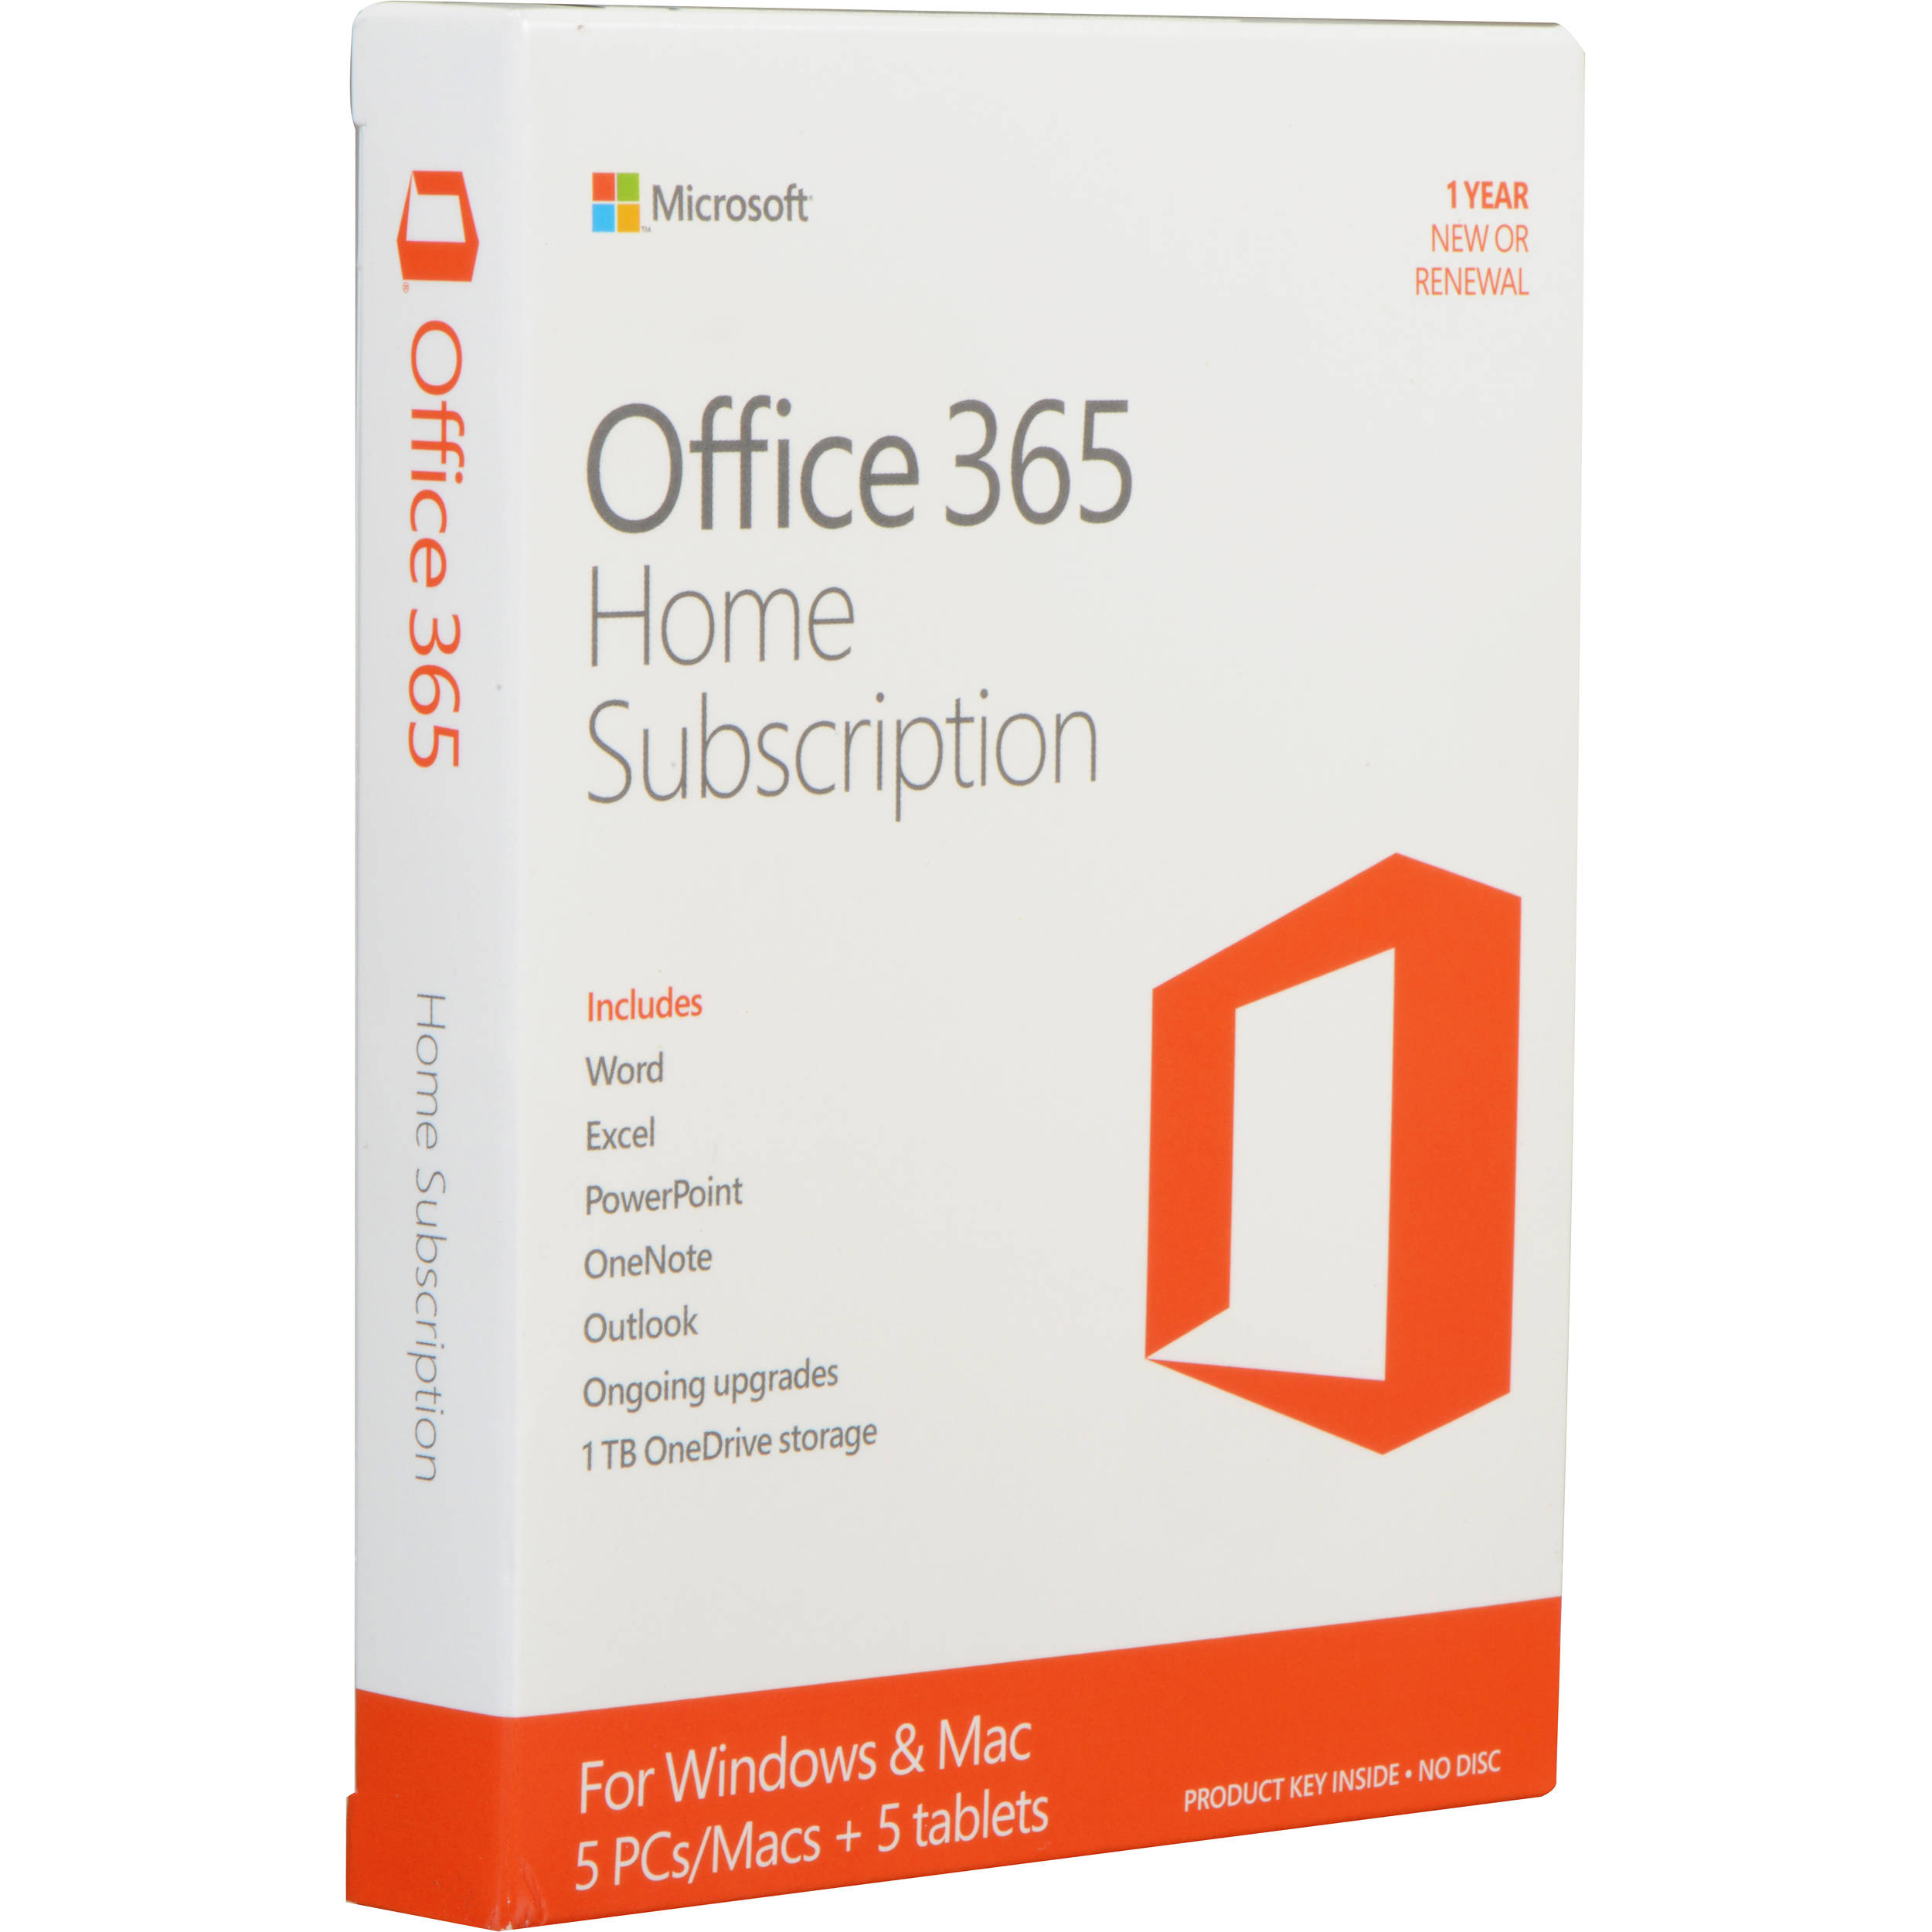 Microsoft Office 365 Home Kit B&H Photo Video